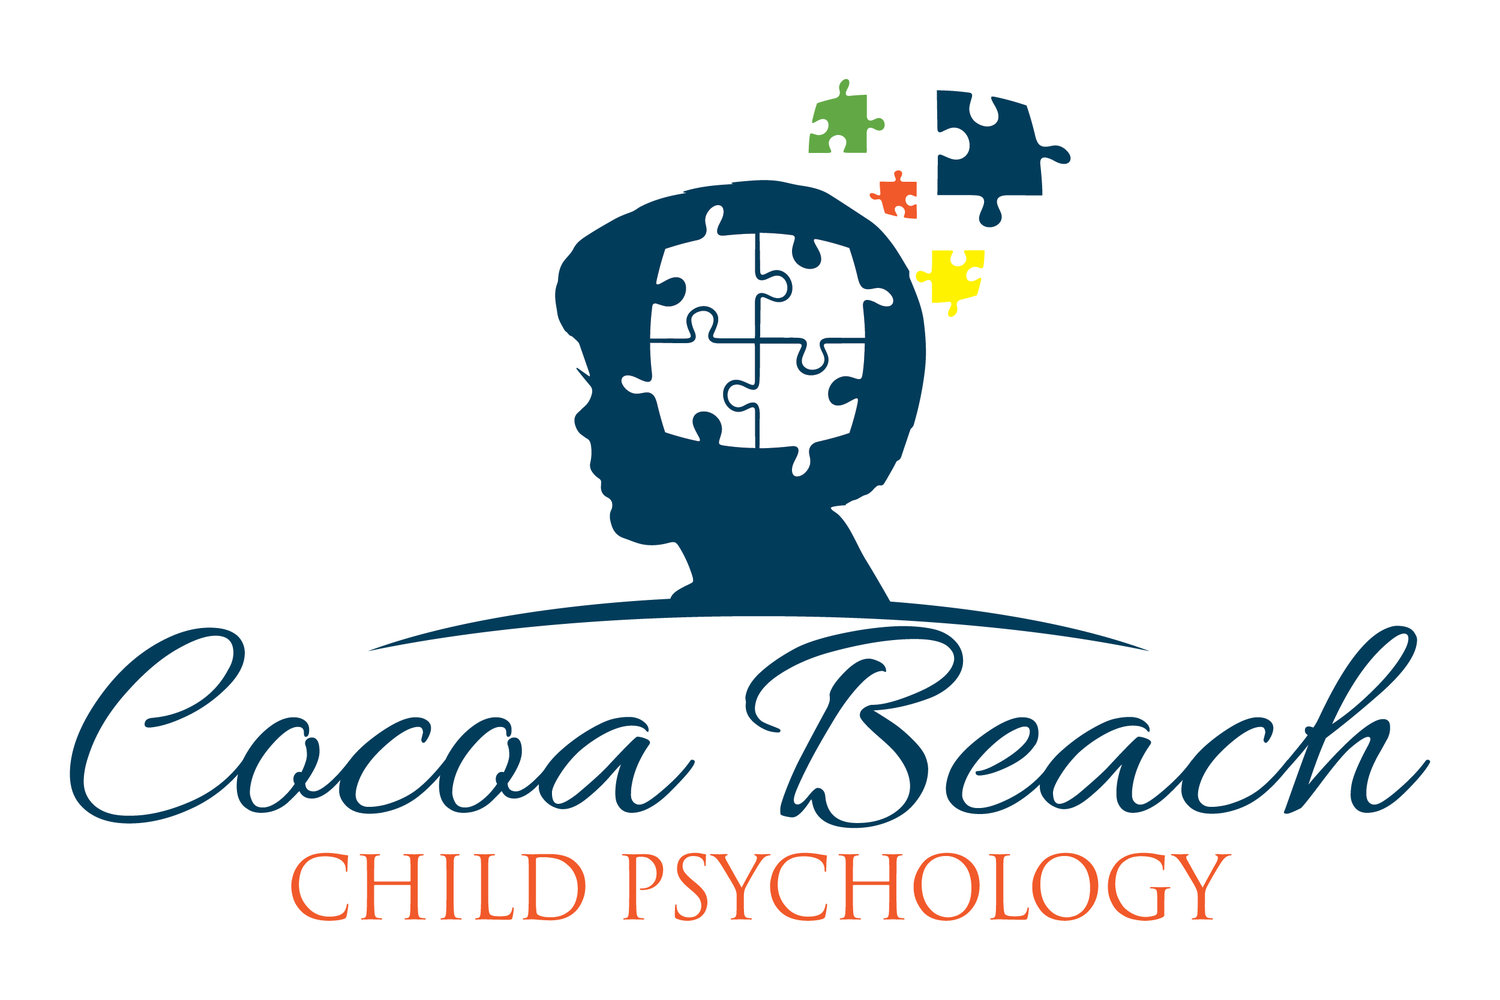 Cocoa Beach Child Psychology